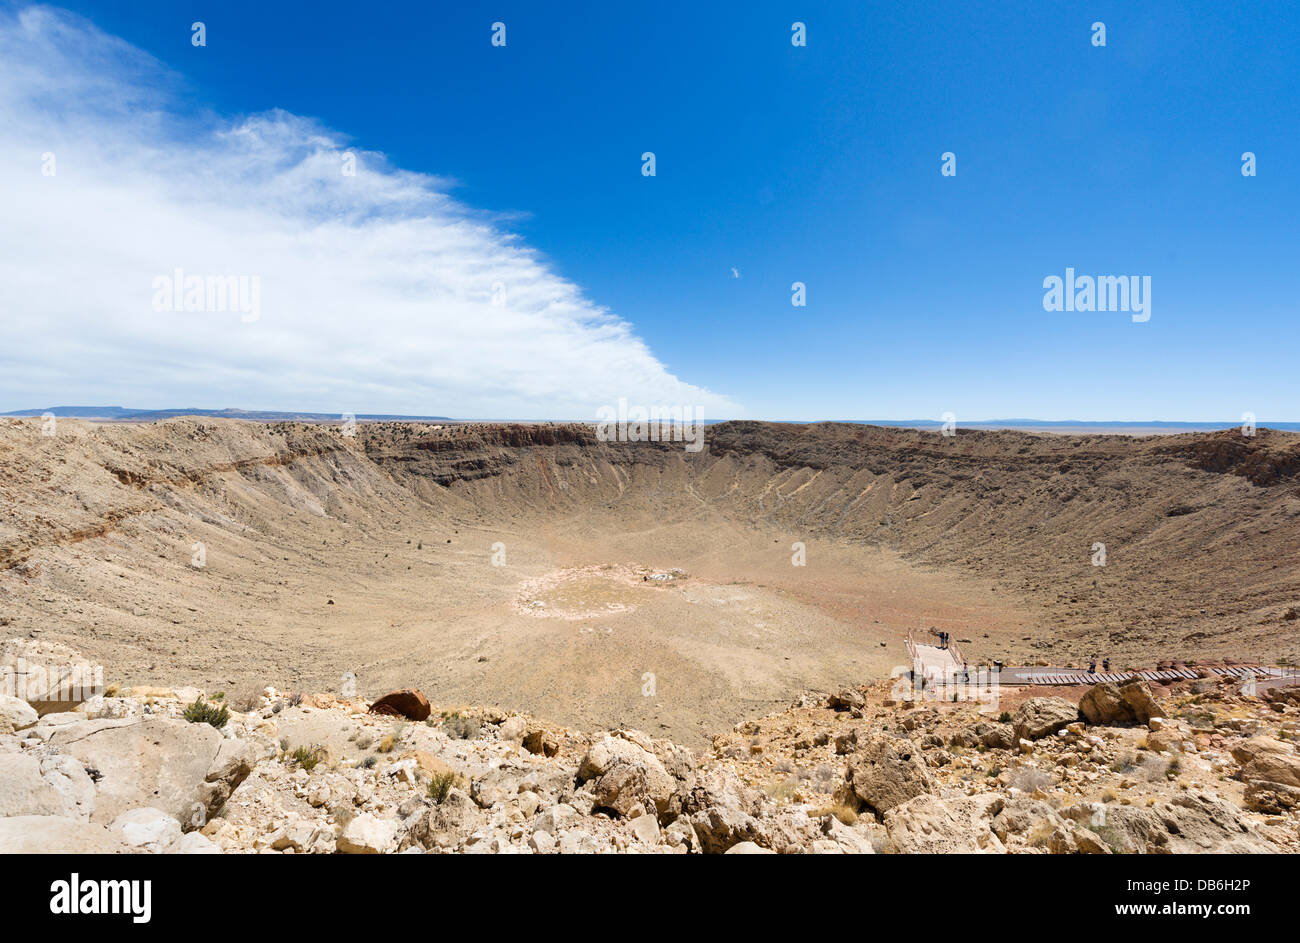 Meteor Crater (also known as Barringer Crater) near Winslow, Arizona, USA - Stock Image